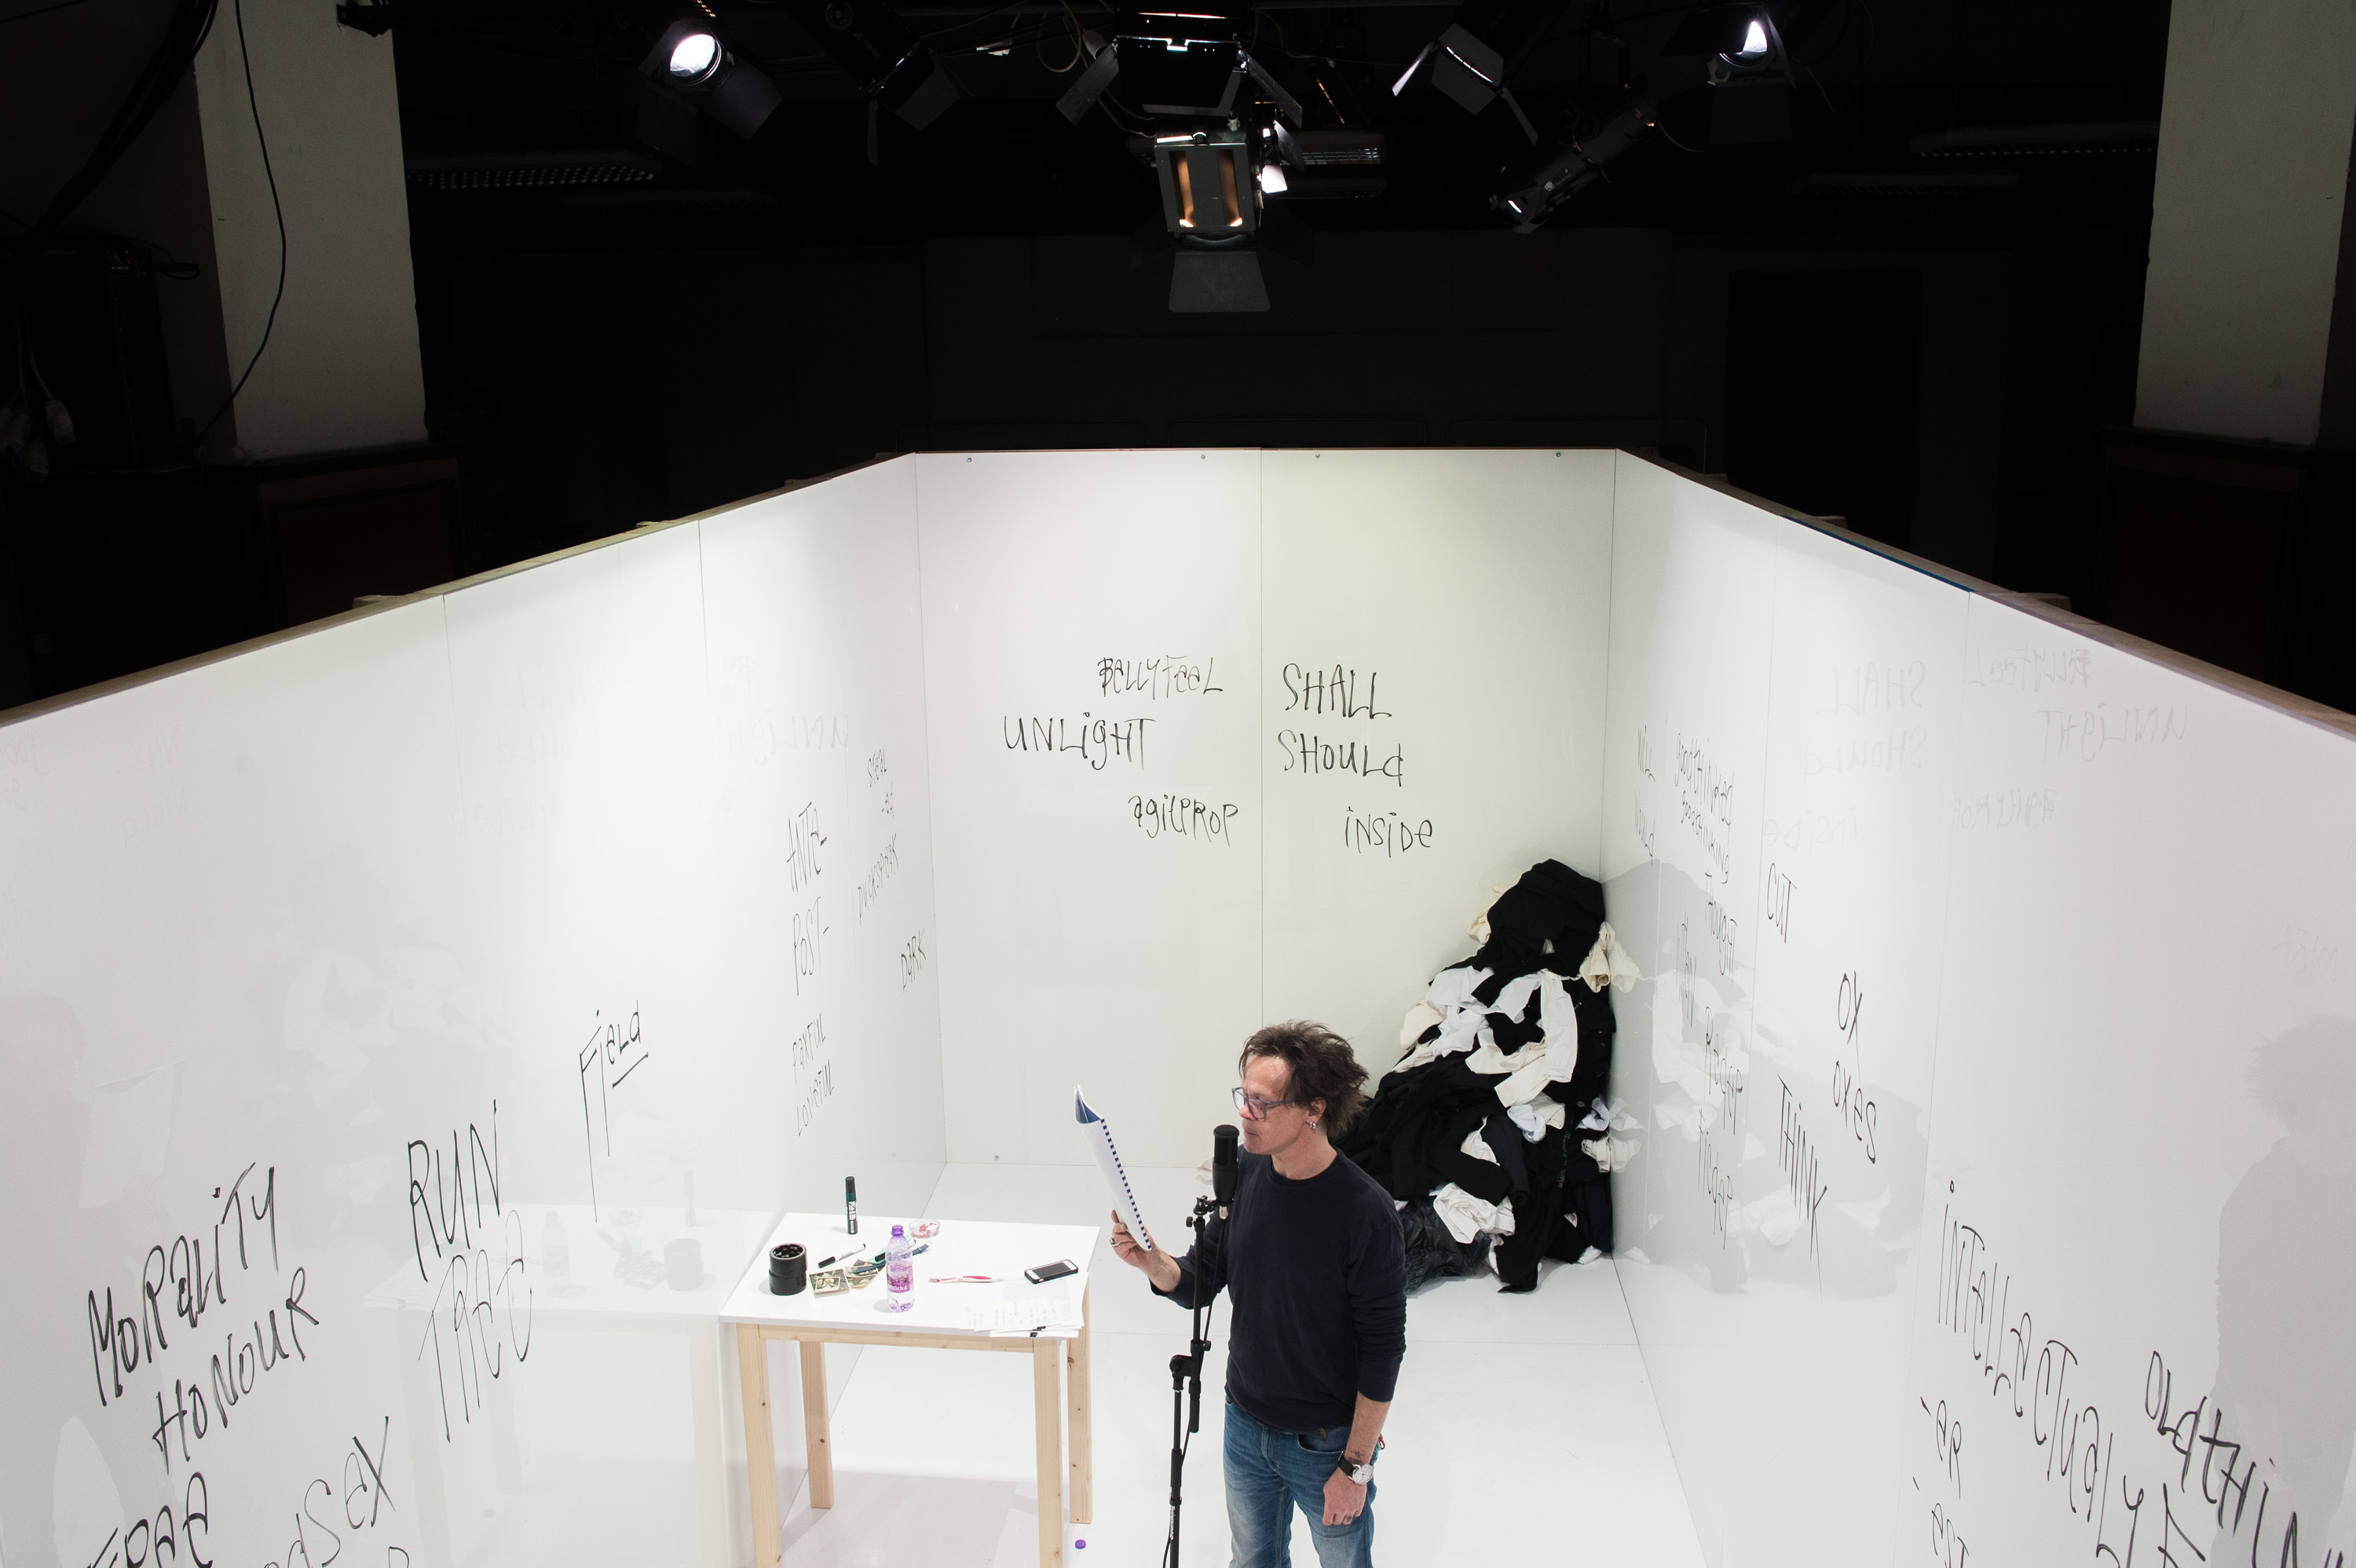 Principles of newspeak, STUDIO 12 (photo by Robert Tappert)